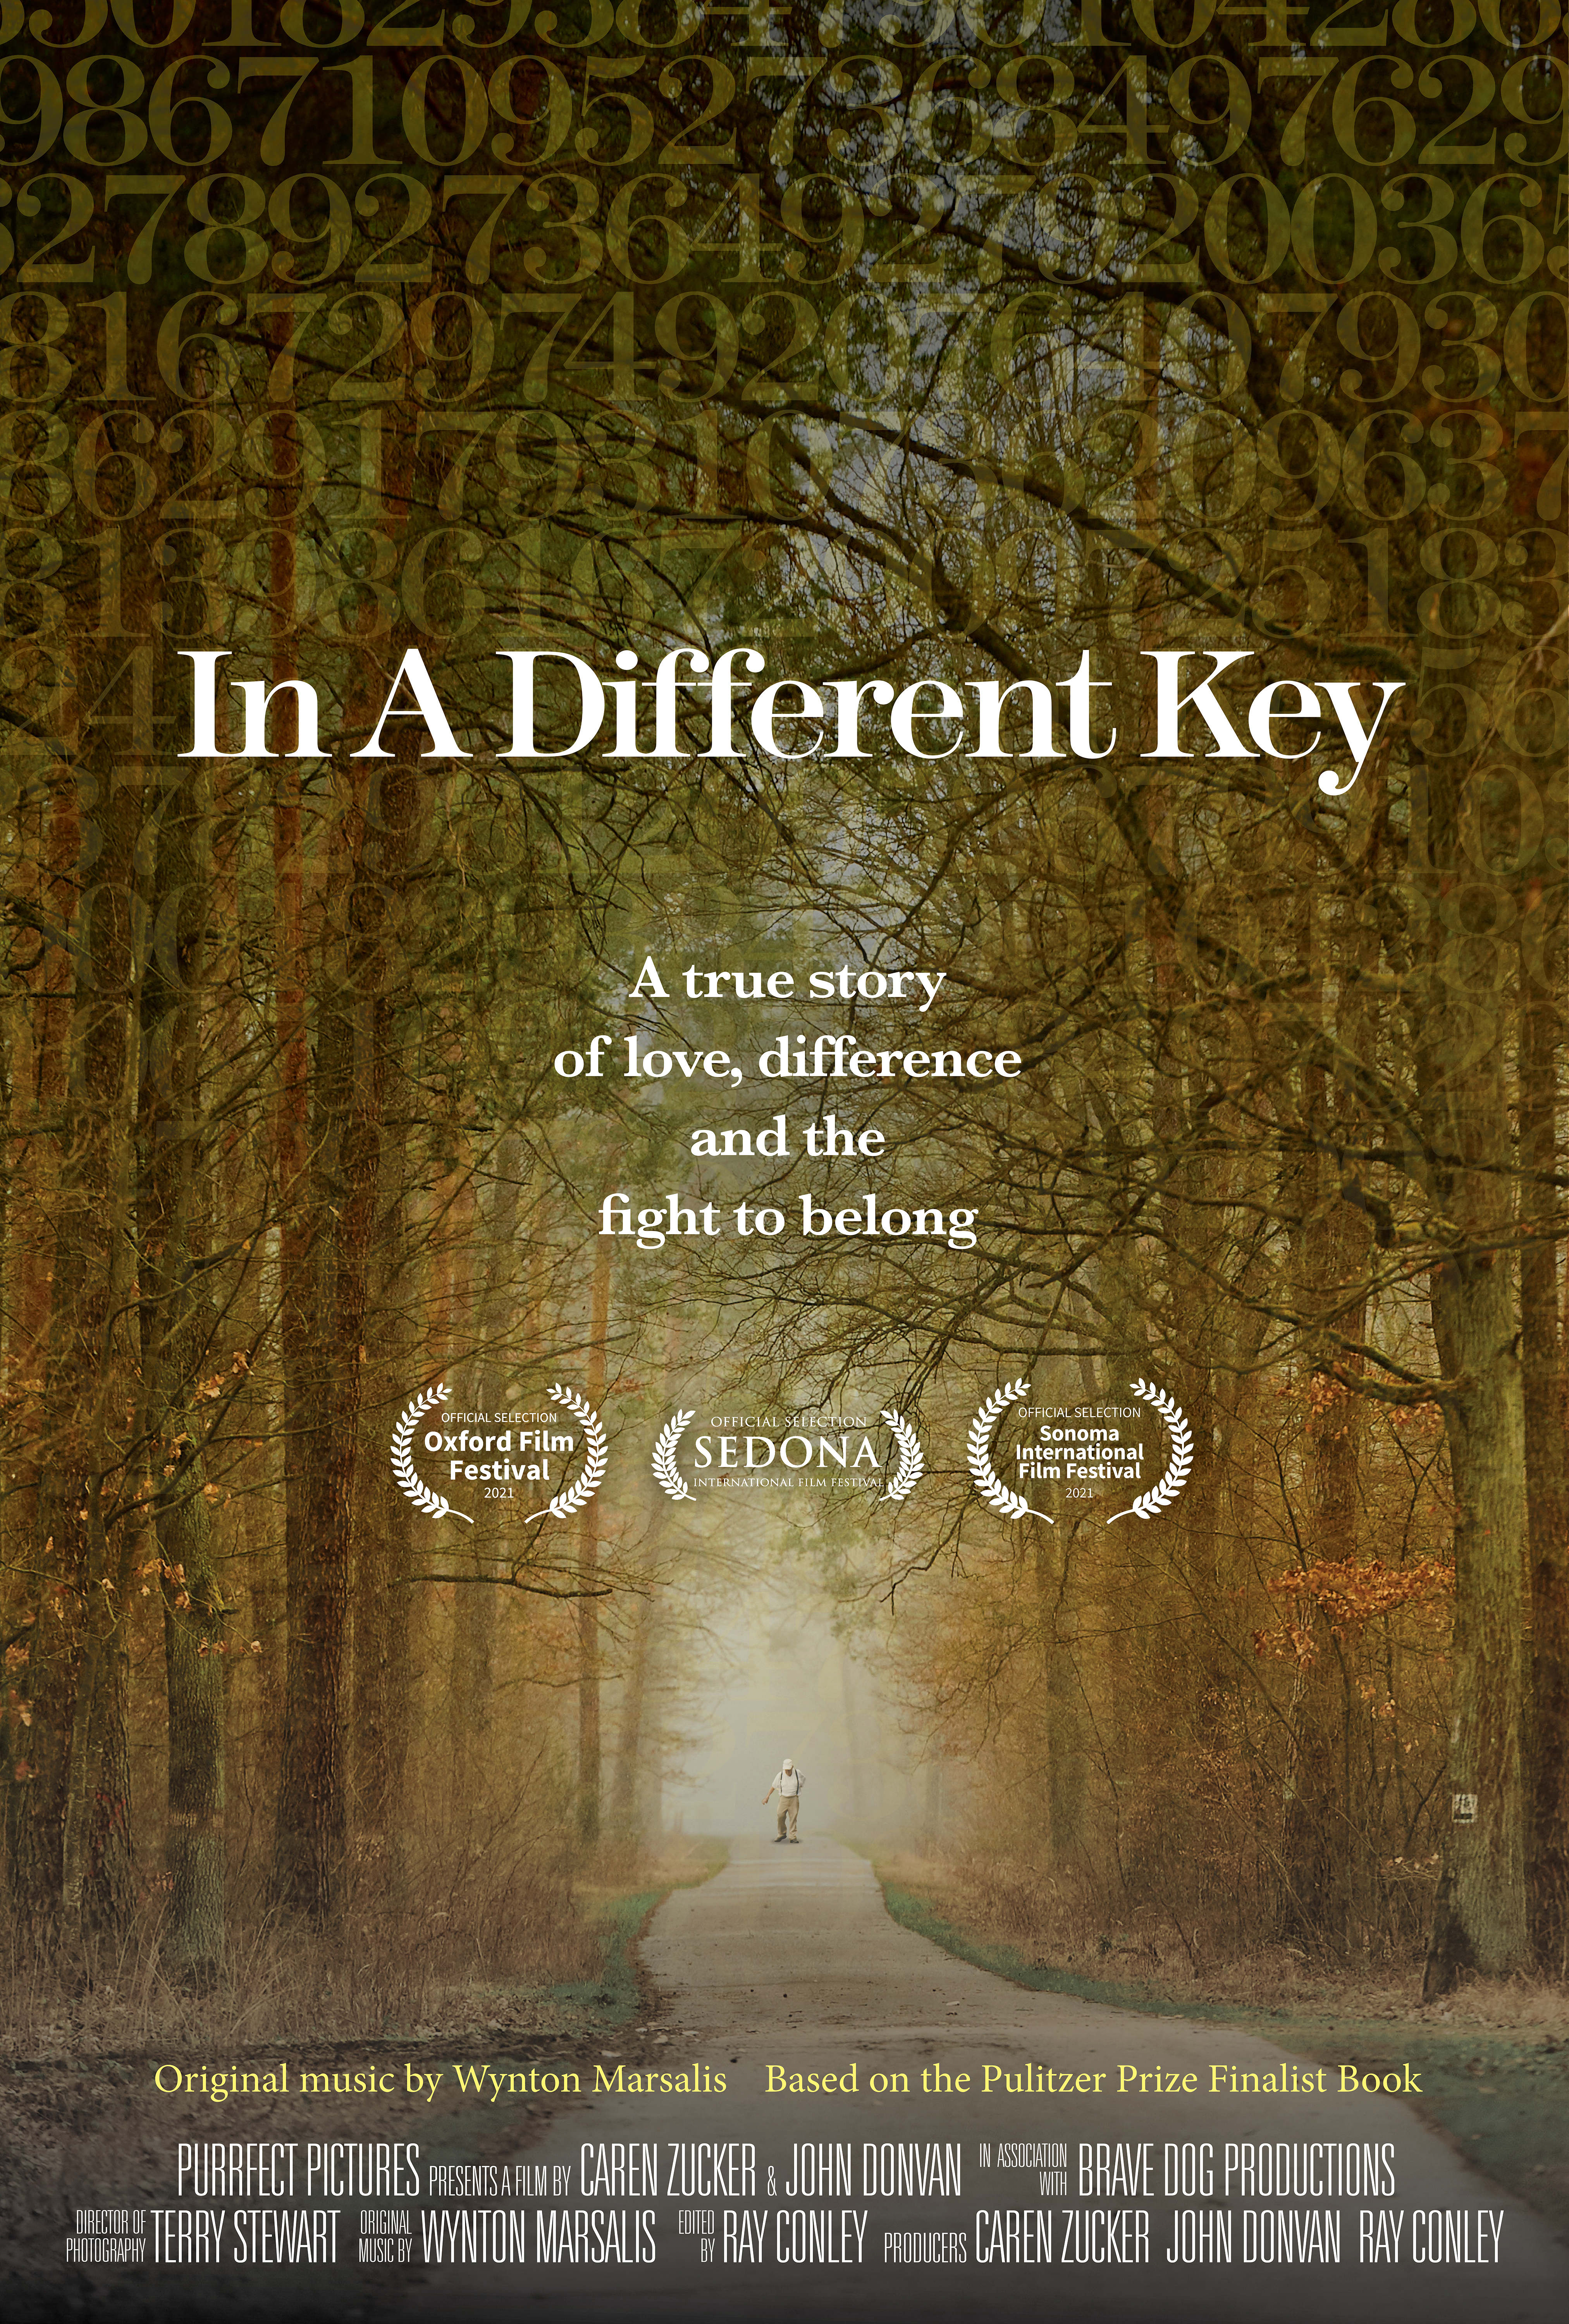 IN A DIFFERENT KEY POSTER